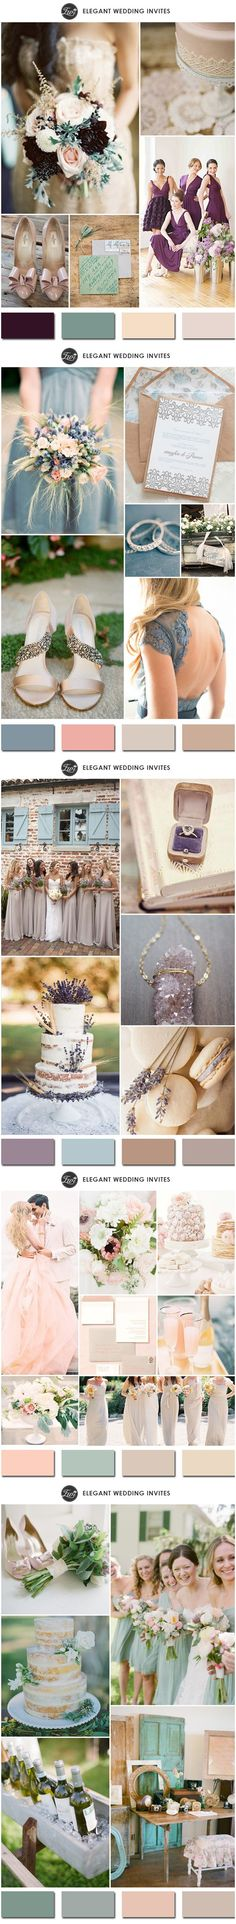 2015 Trending Neutral Wedding Color Ideas with Different Colors #weddingcolorsmy colors blue and drk plum